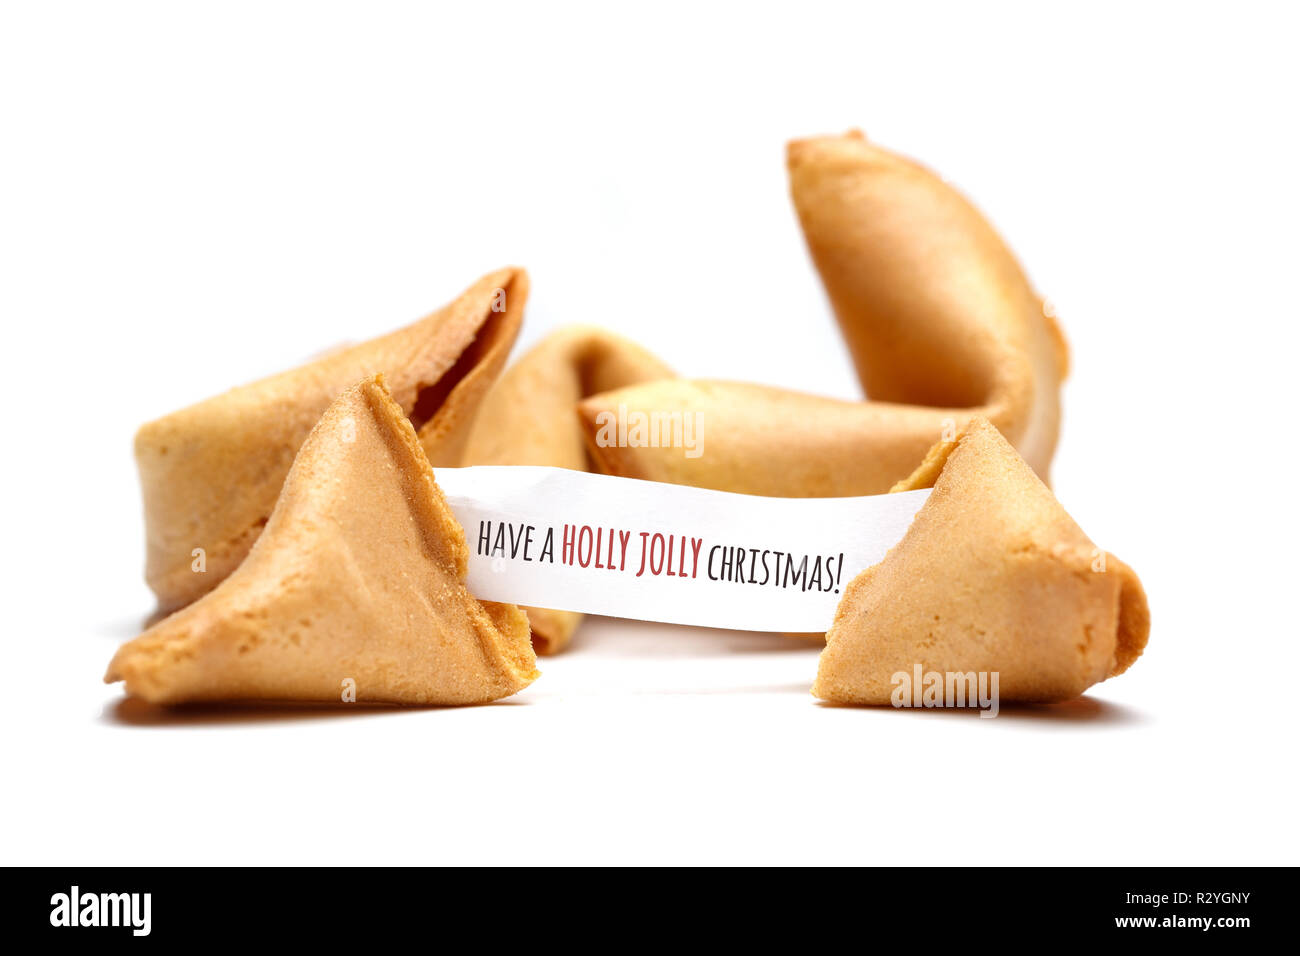 Have a holly jolly Christmas. Photo of chinese cookies with text wishes on blank white background - Stock Image